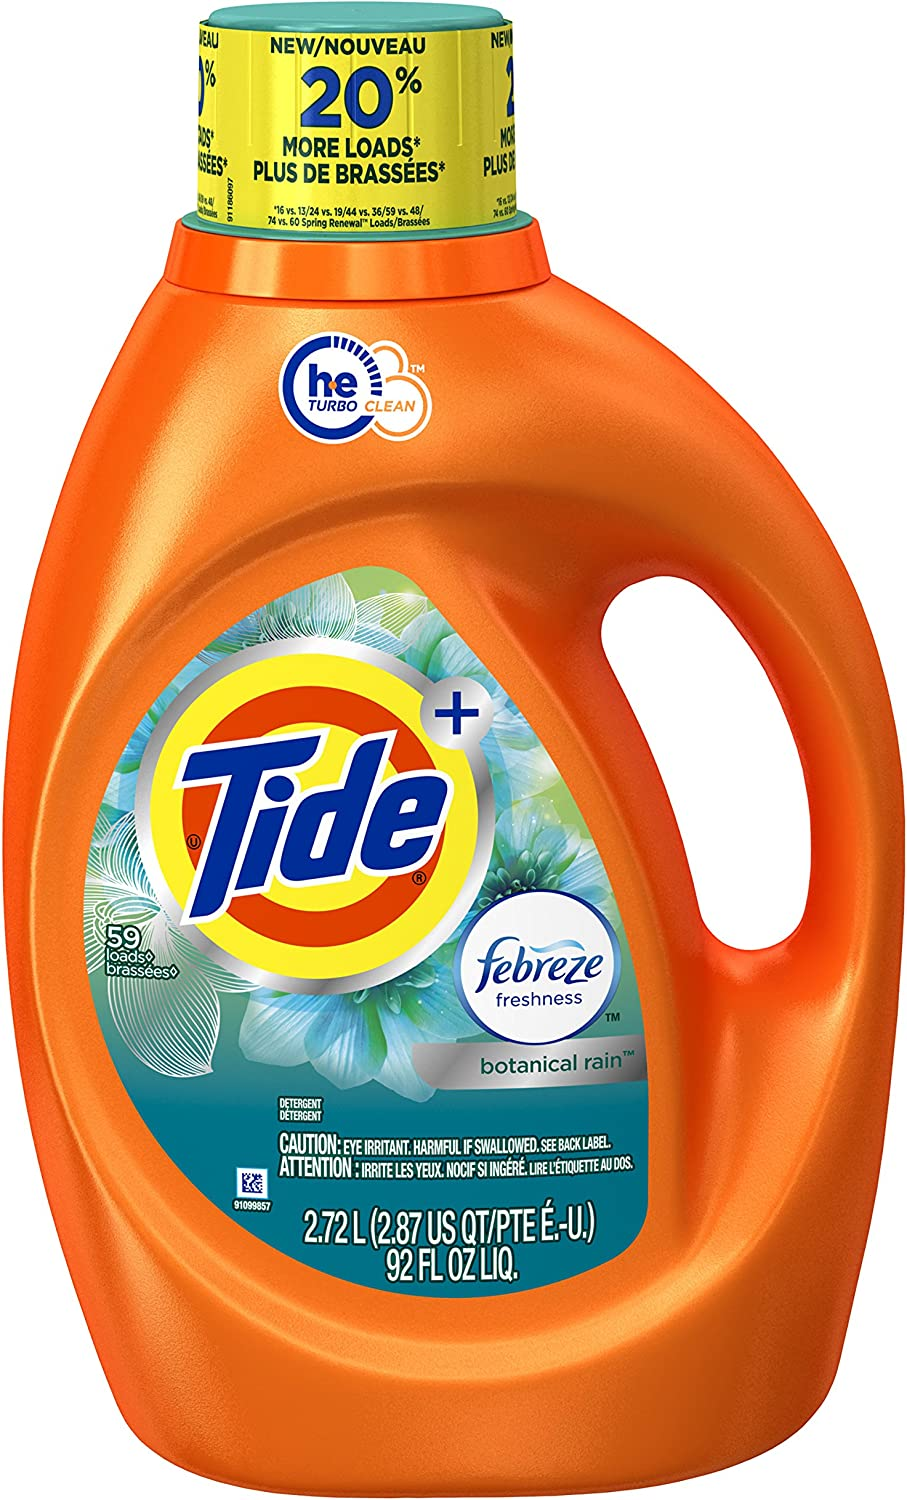 Tide 59 Loads Plus Febreze Freshness Botanical Rain He Turbo Clean Liquid Laundry Detergent, 92 Fluid Ounce(Packaging May Vary)